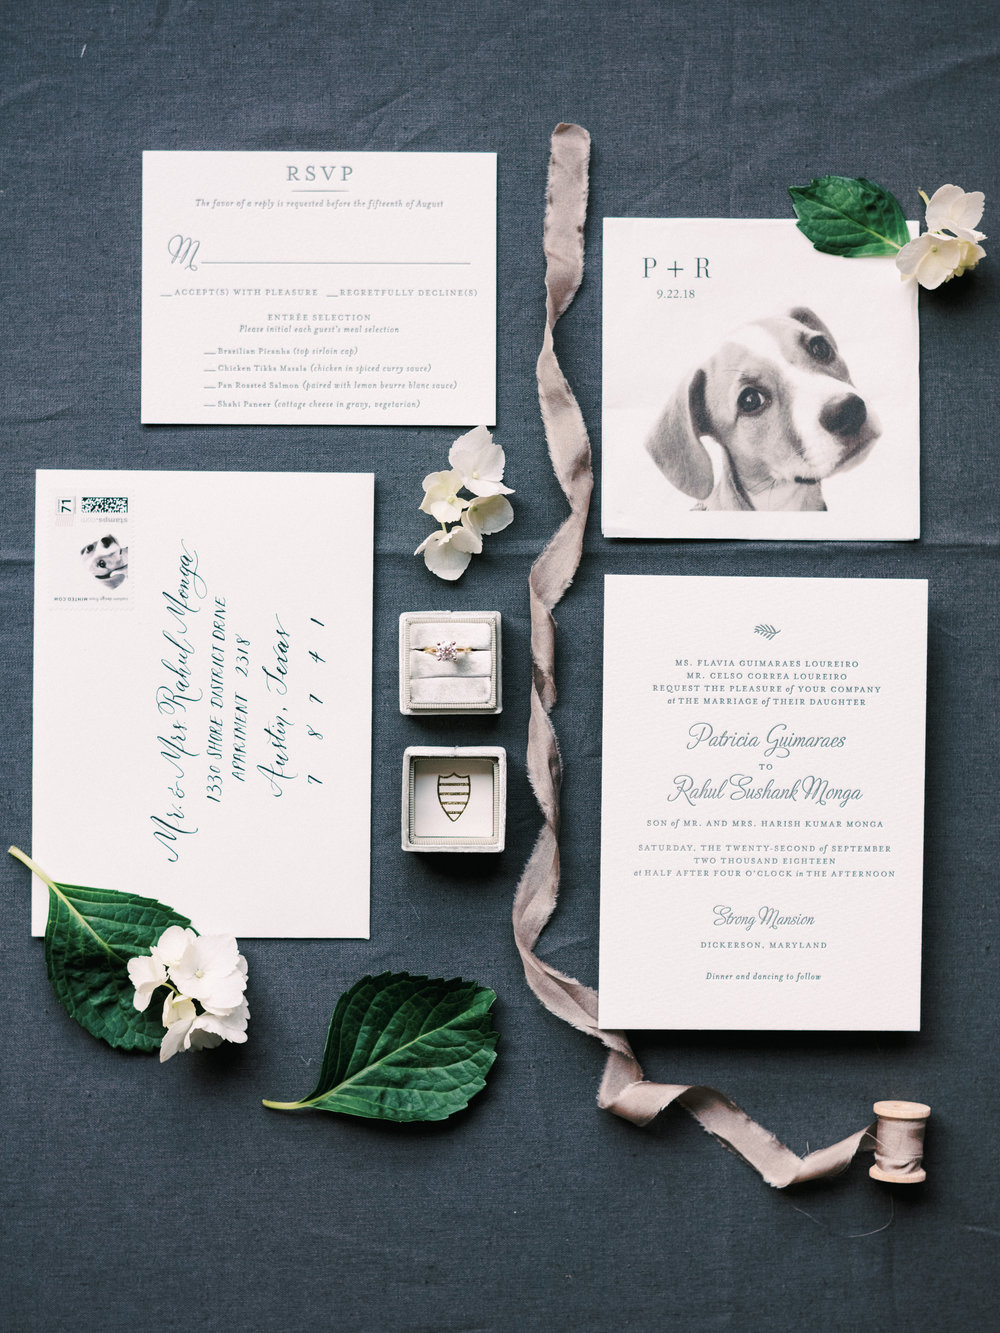 Custom cocktail napkins and stamps featuring their beloved pup was such a fun detail! Photography by Clarence Chan.